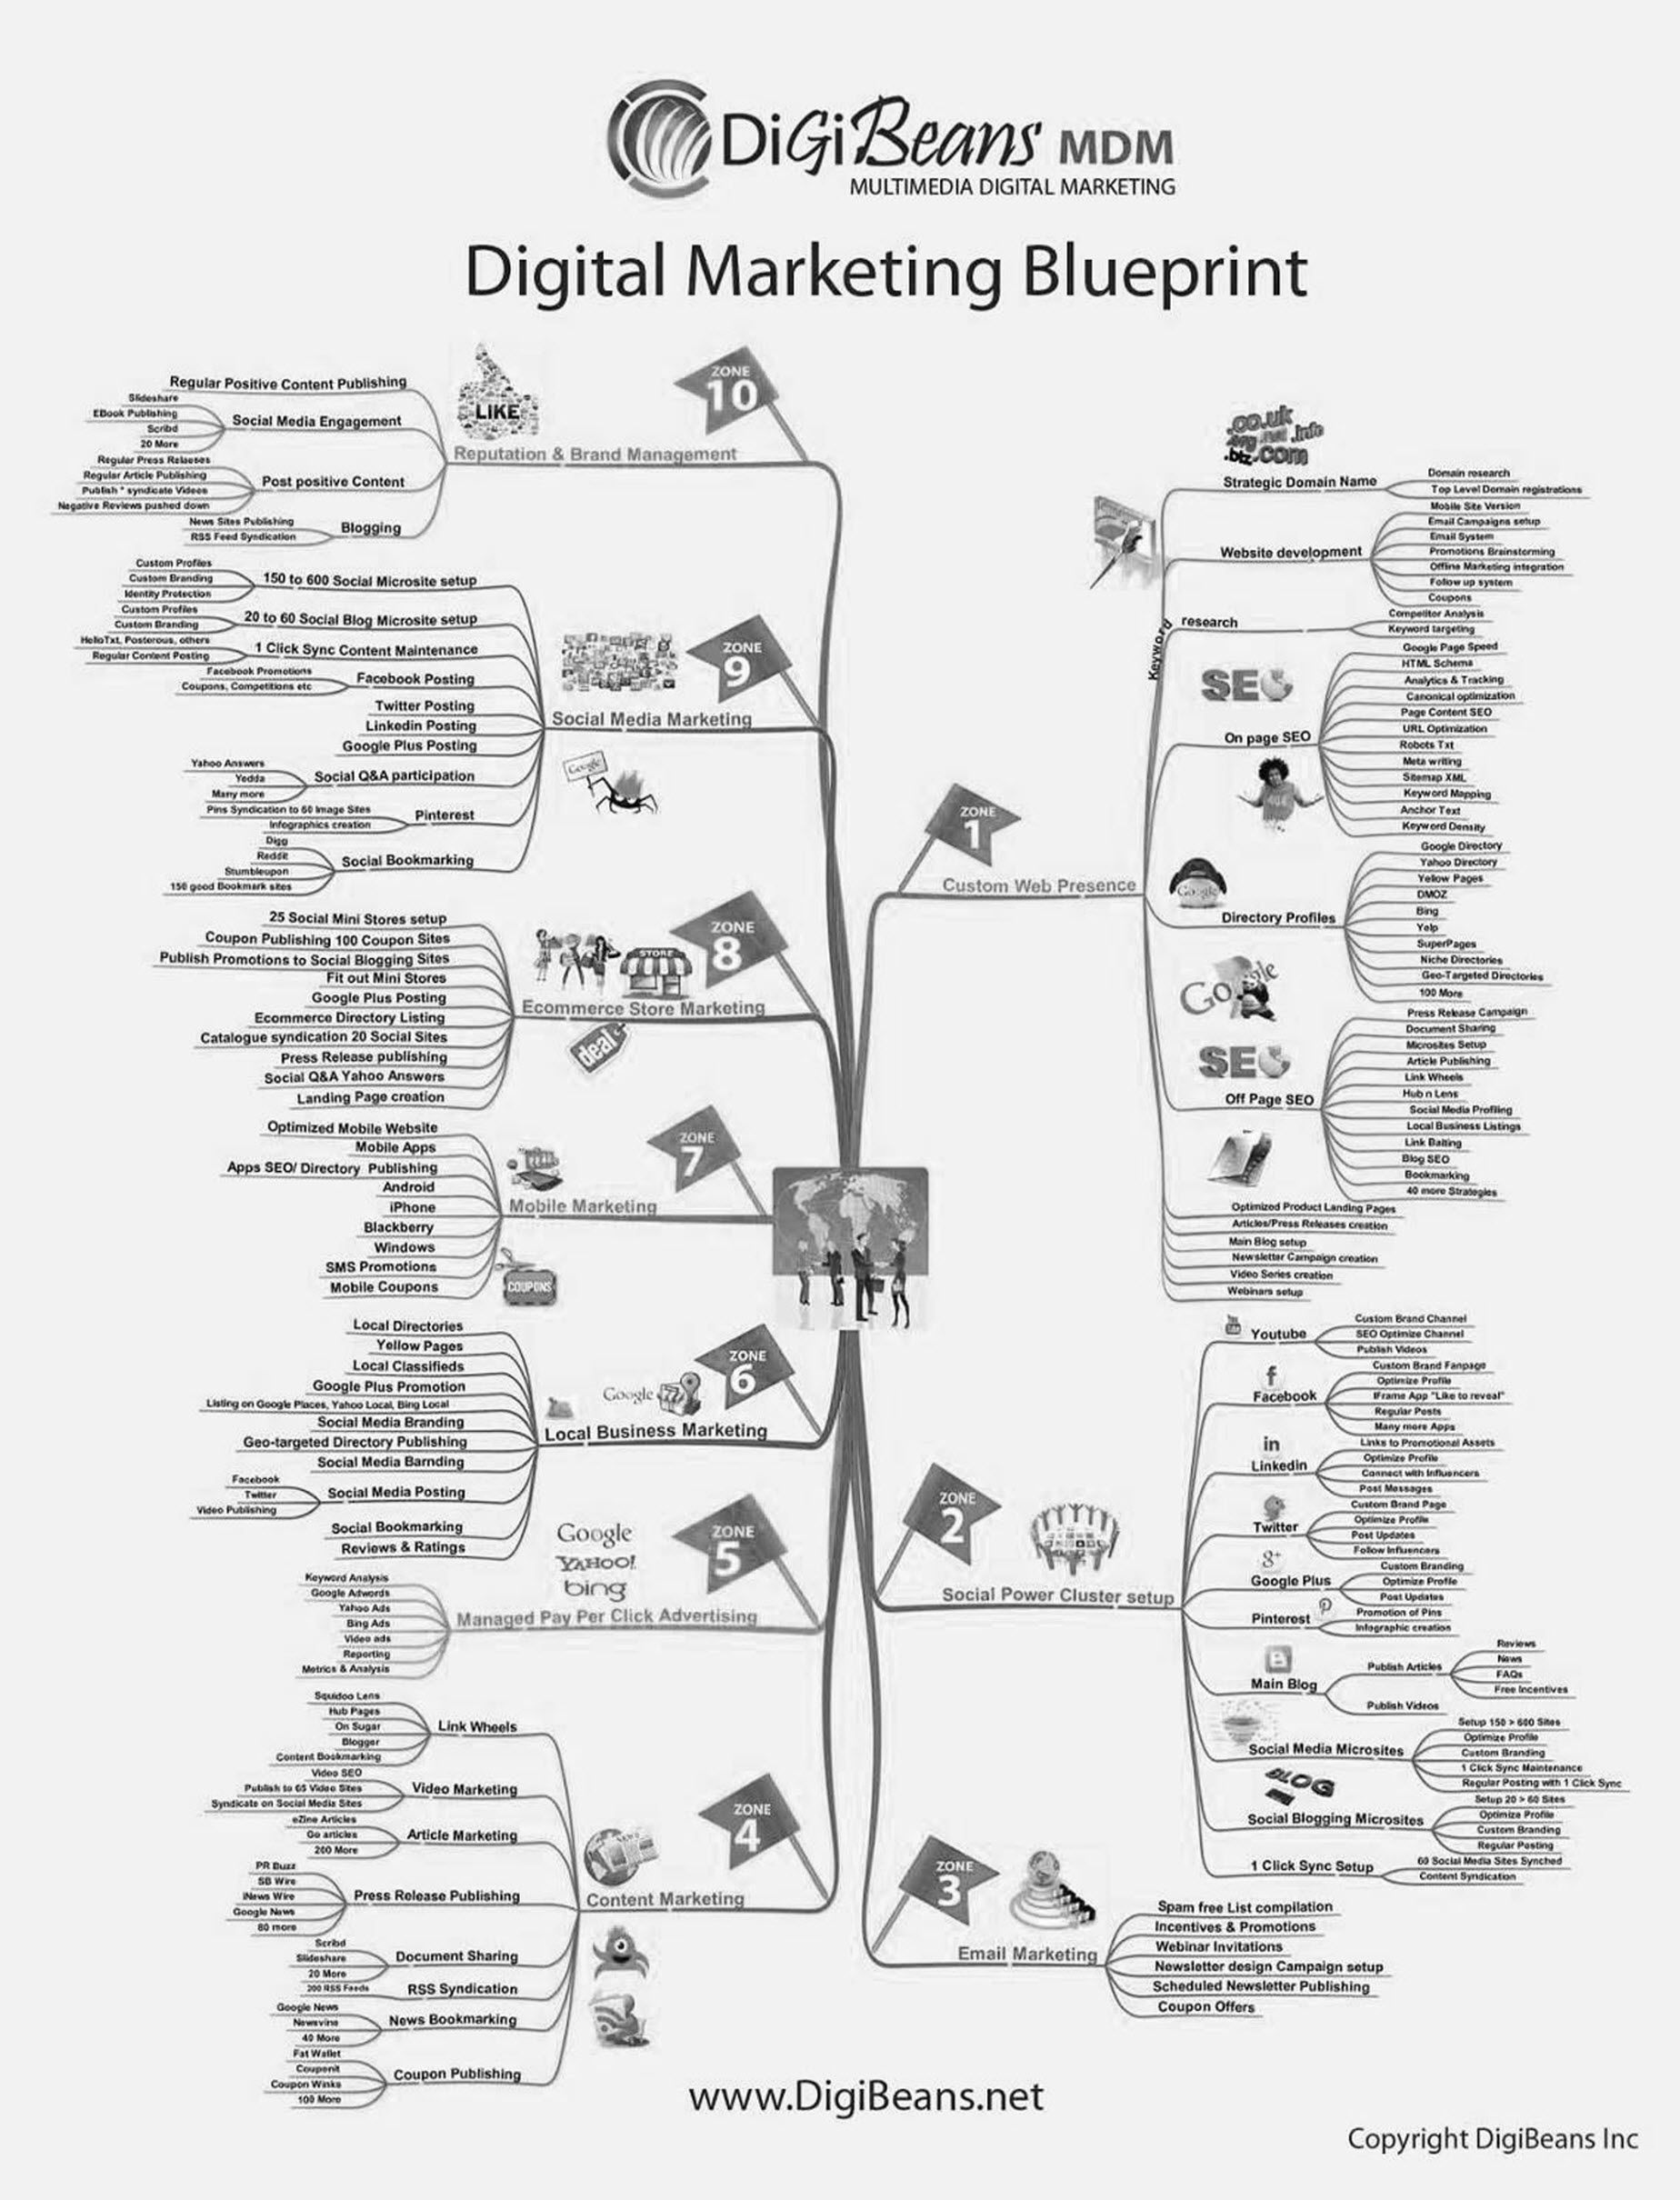 Digital marketing blueprint everything under the sun about digital digital marketing blueprint everything under the sun about digital marketing malvernweather Gallery